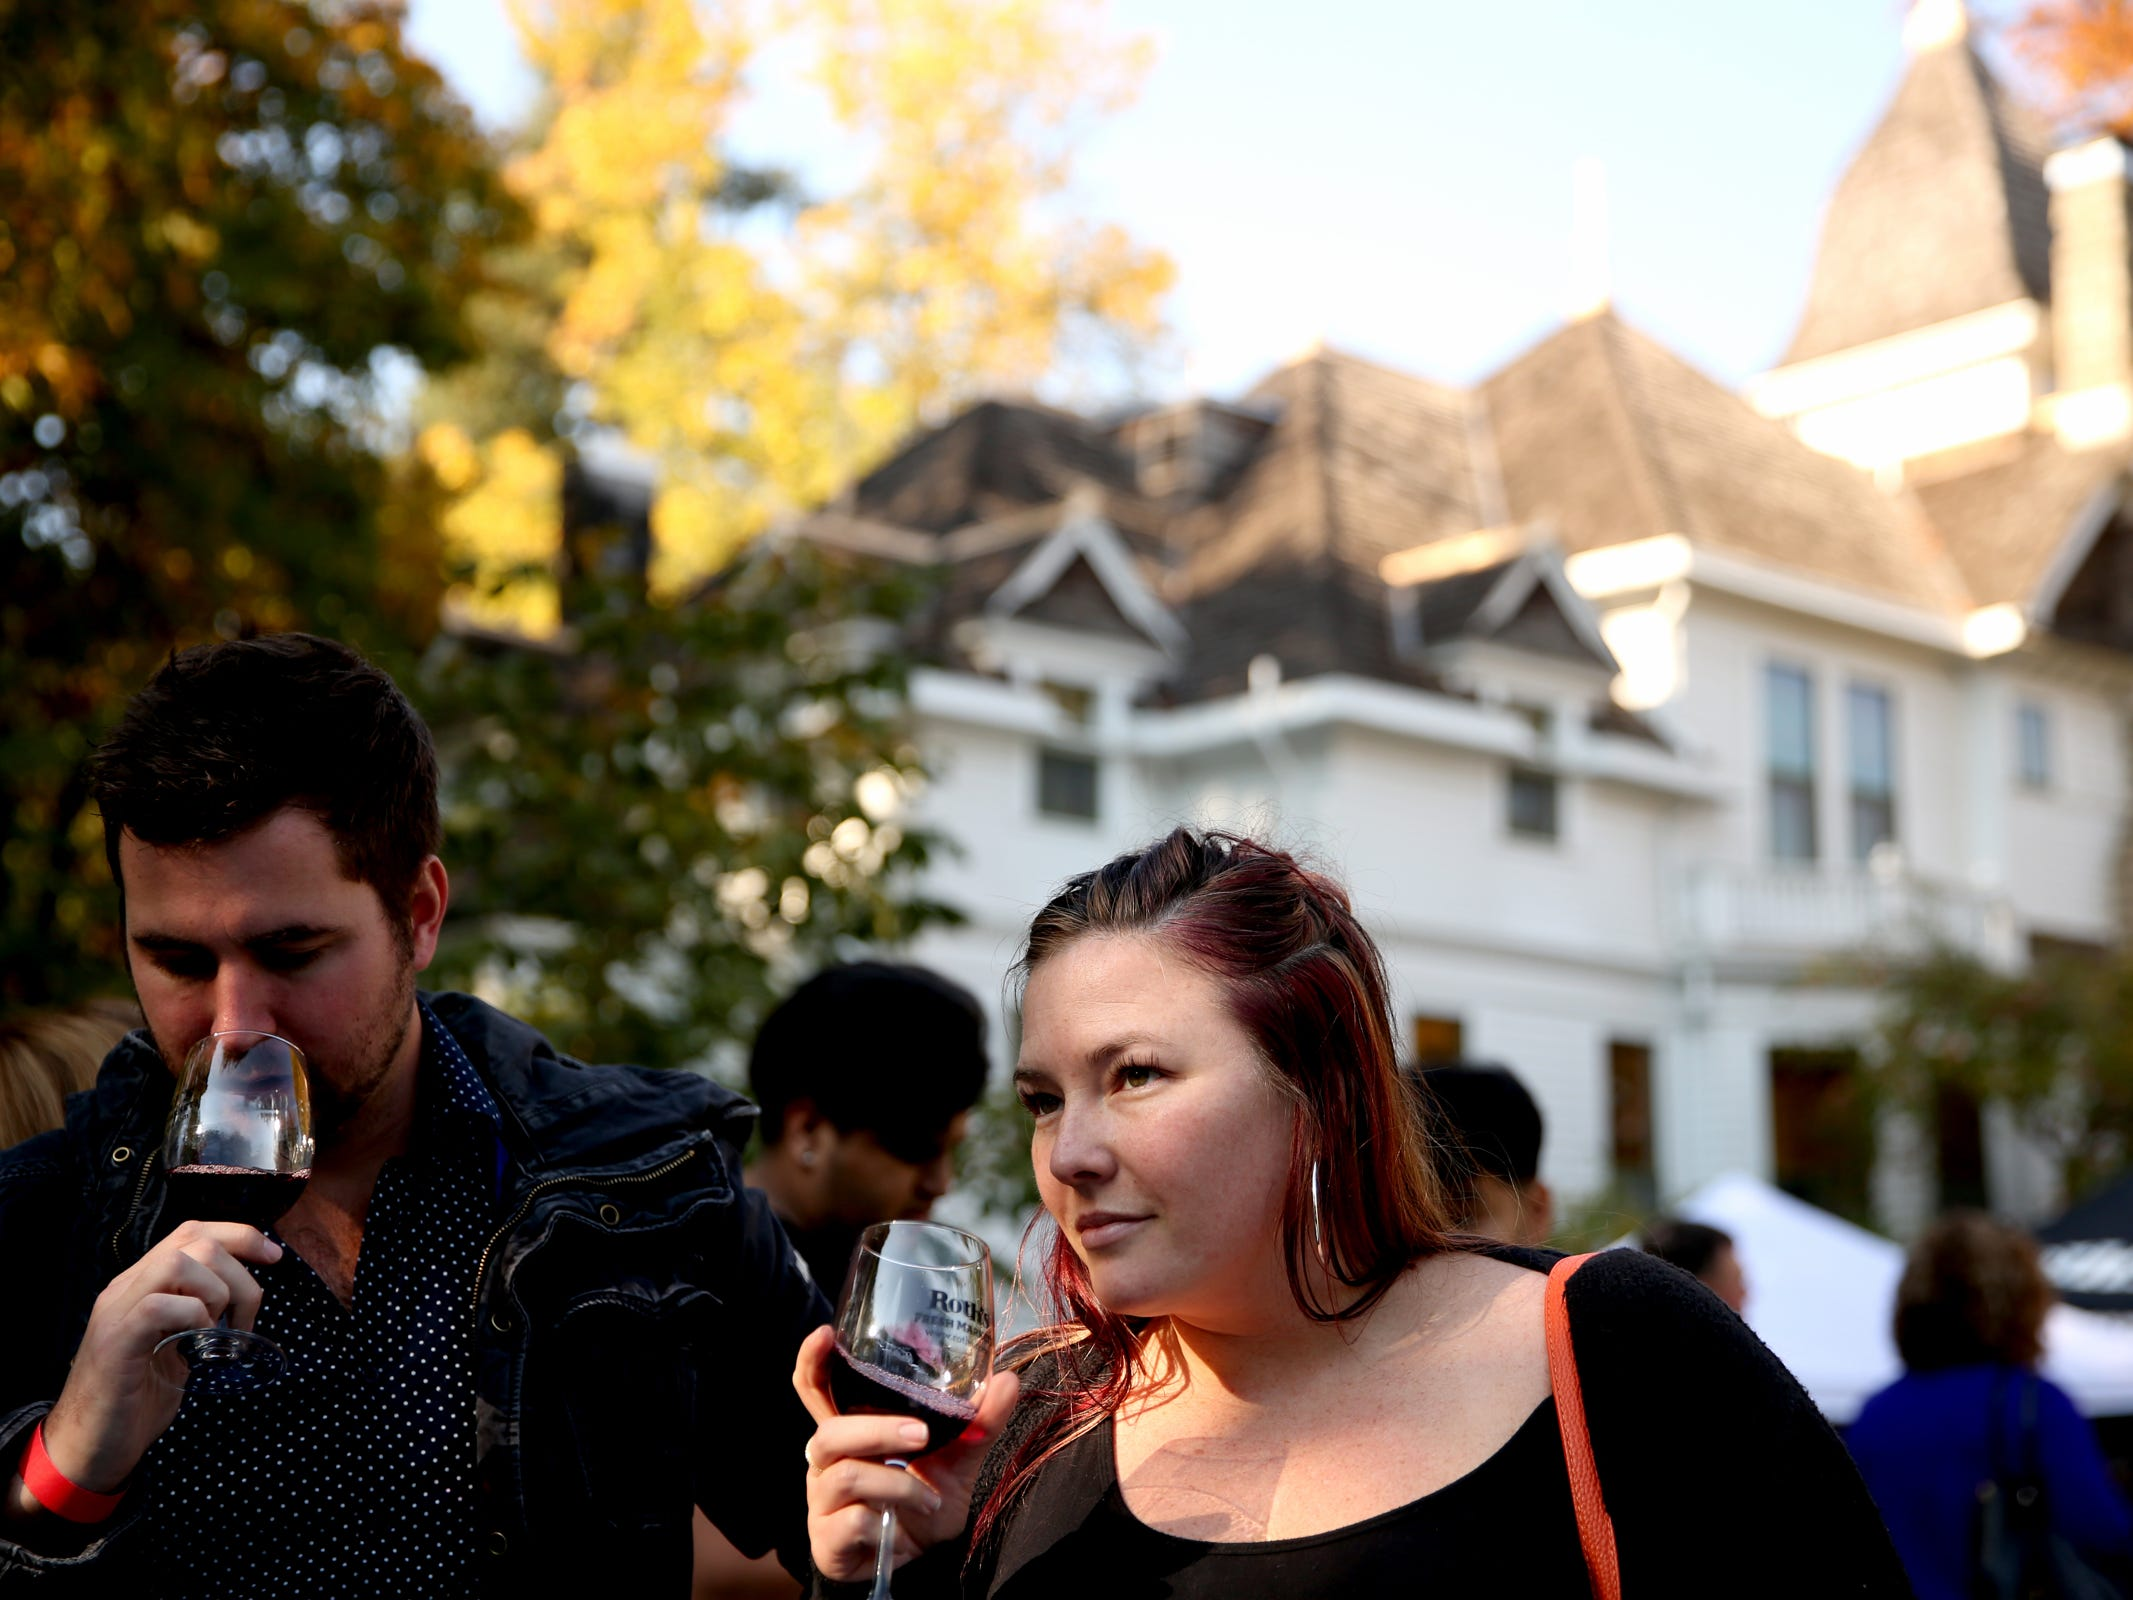 Amanda and Curtis Twenge, of Newberg, taste wine during the Wine & Jazz Festival at Deepwood Museum & Gardens in Salem on Sunday, Oct. 21, 2018.